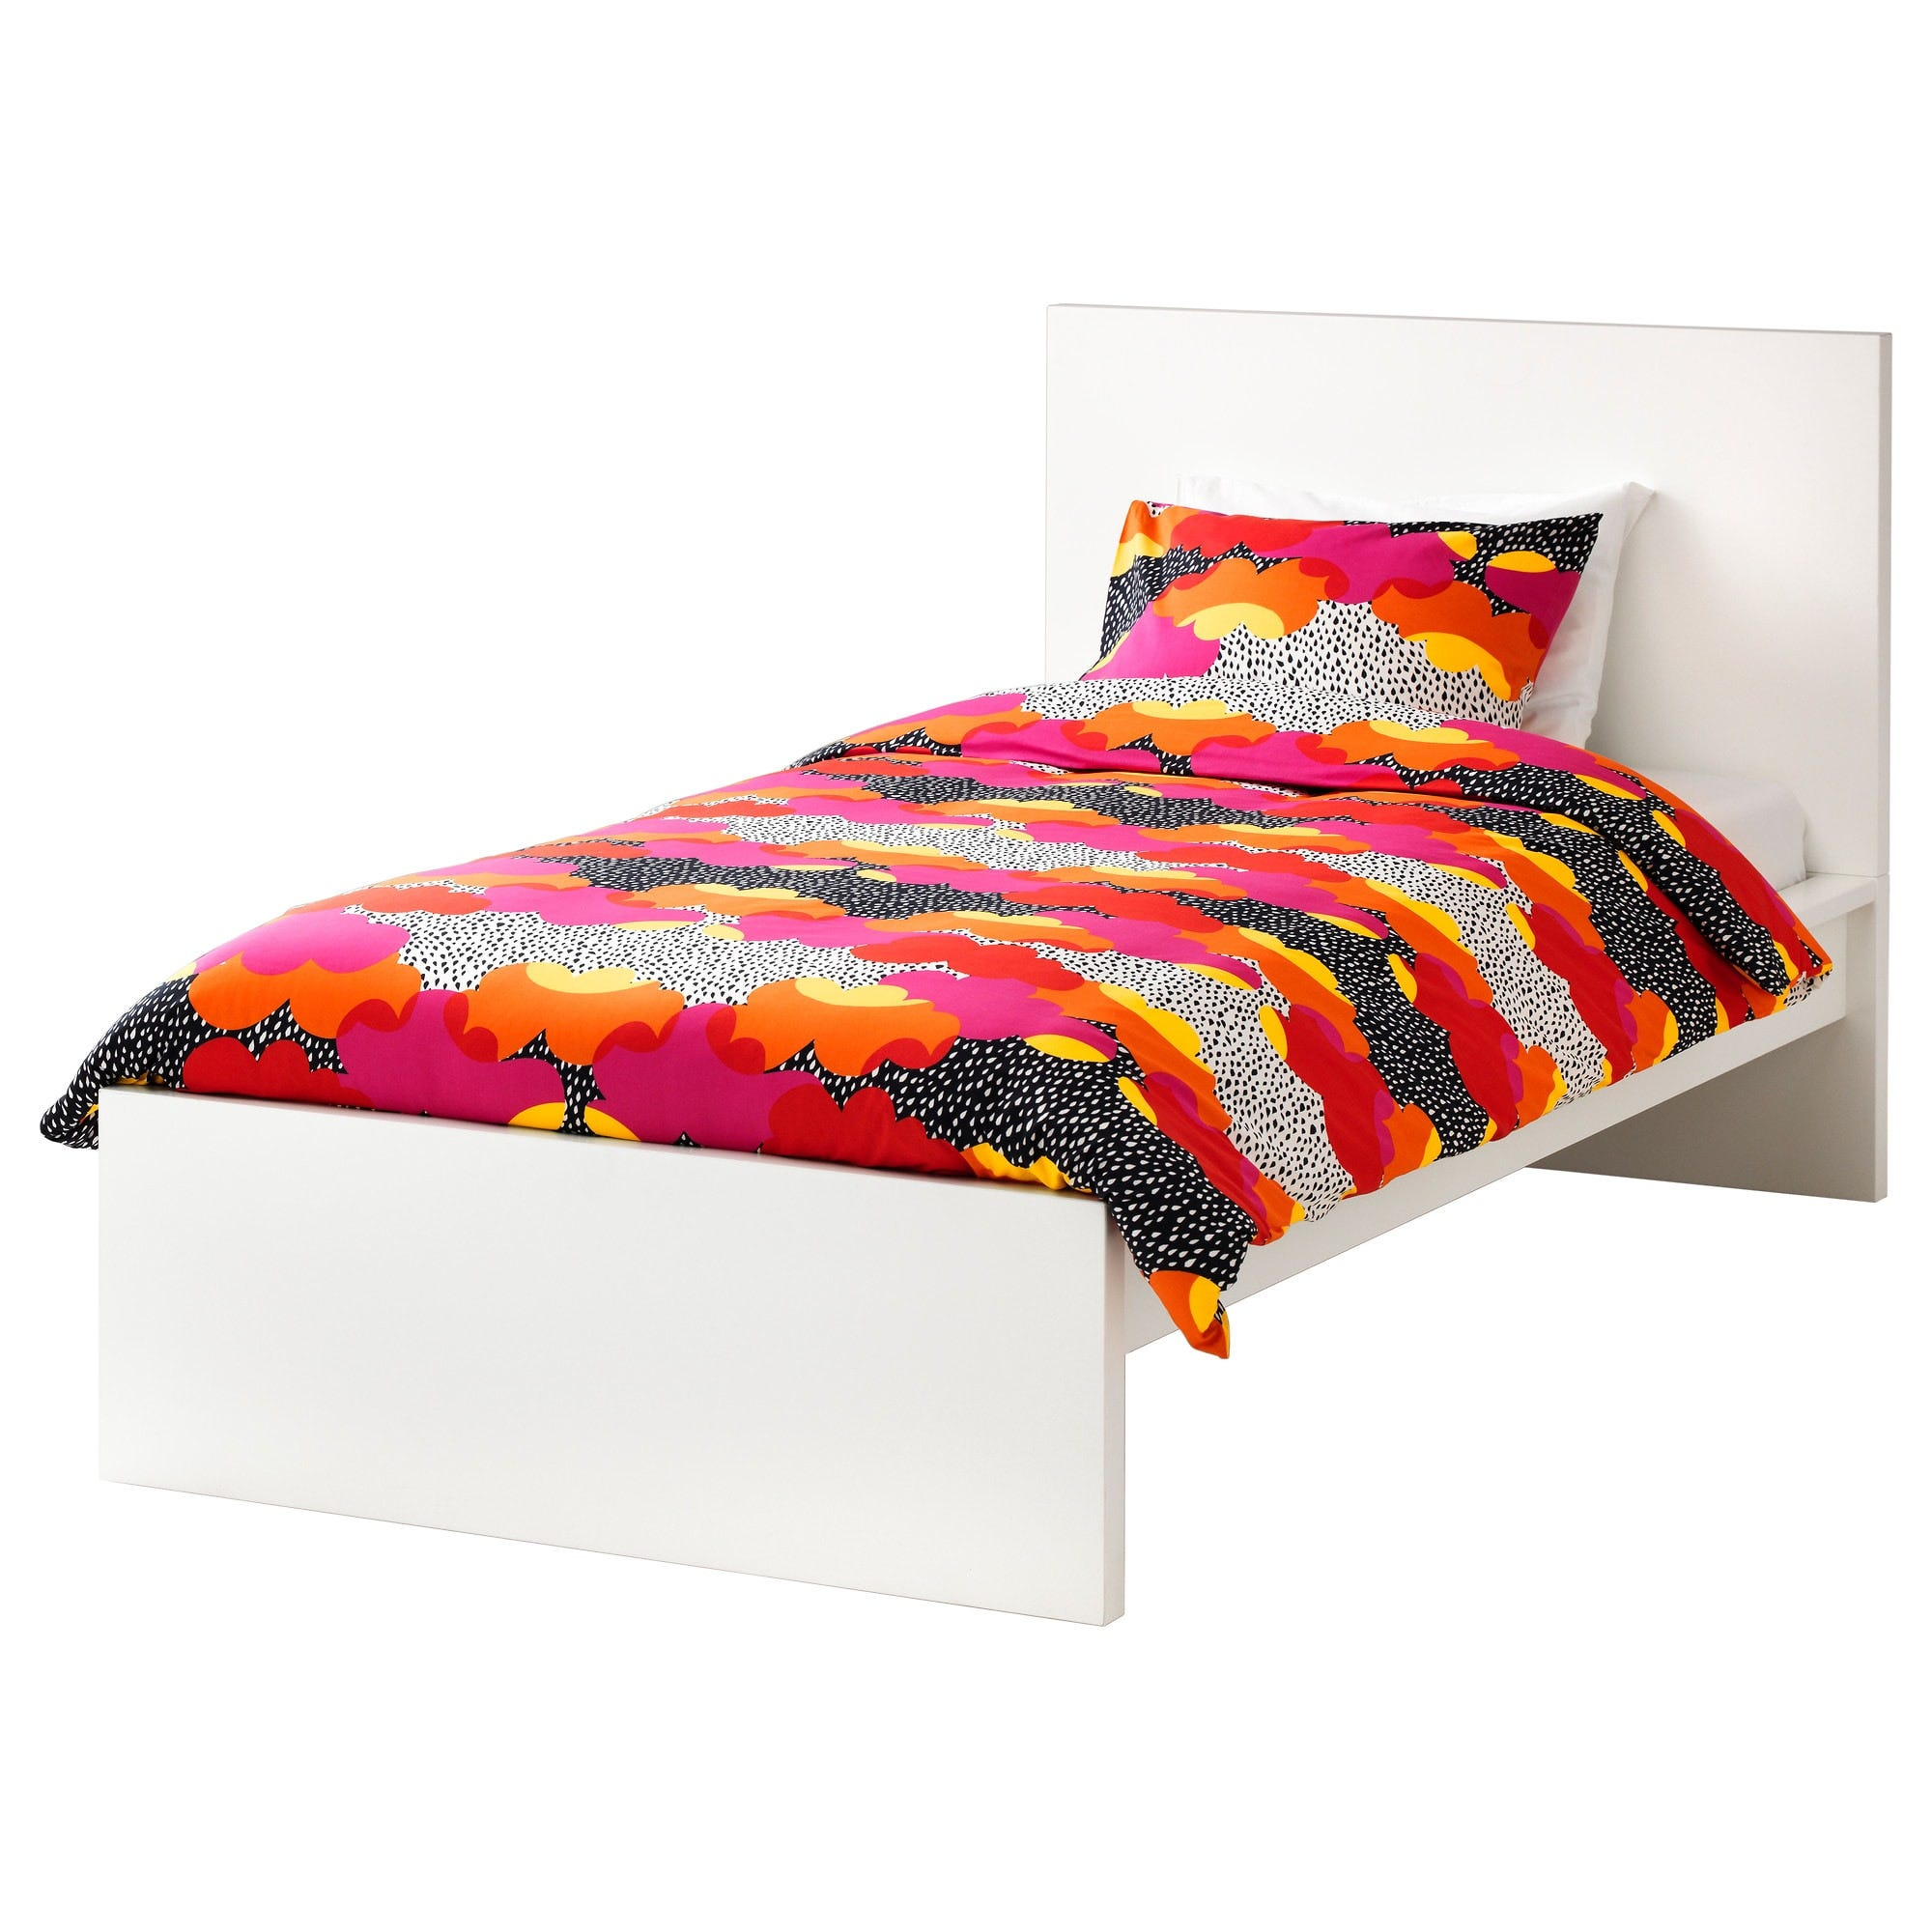 Inspiring Ikea Malm Bed Frame Decoration